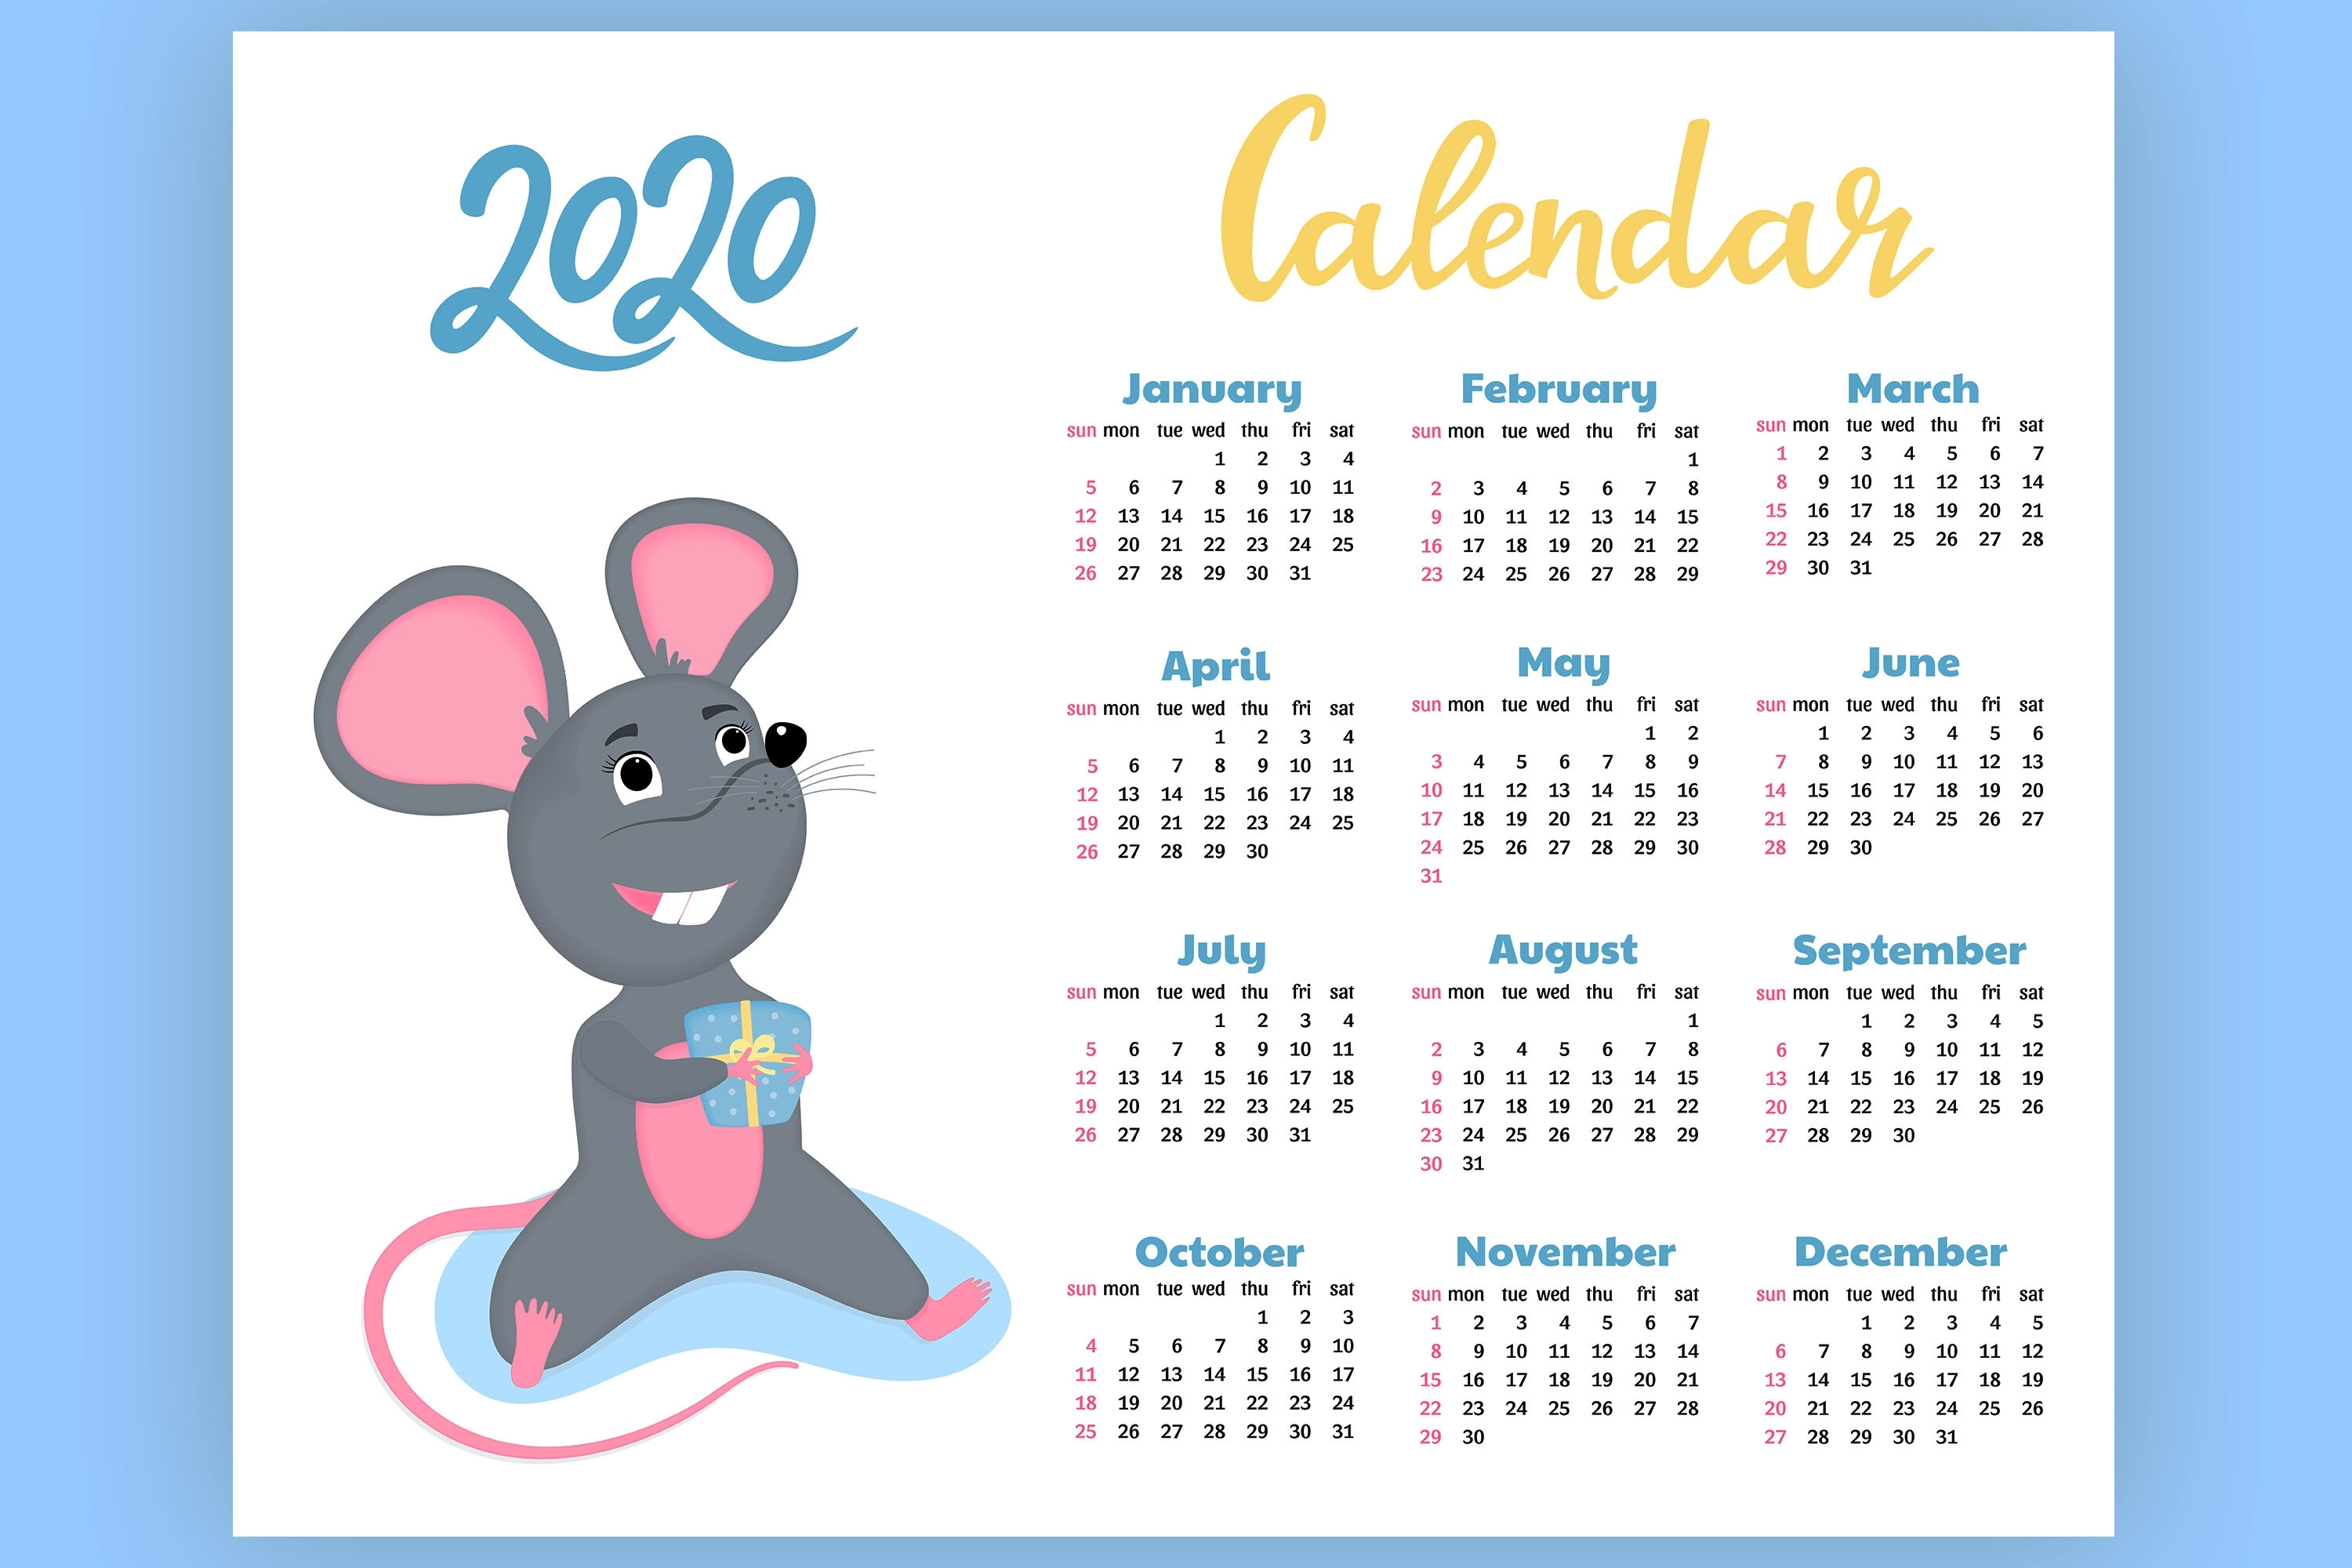 Calendar For 2020 From Sunday To Saturday. Year Of The Rat inside Calendar Sunday To Saturday 2020